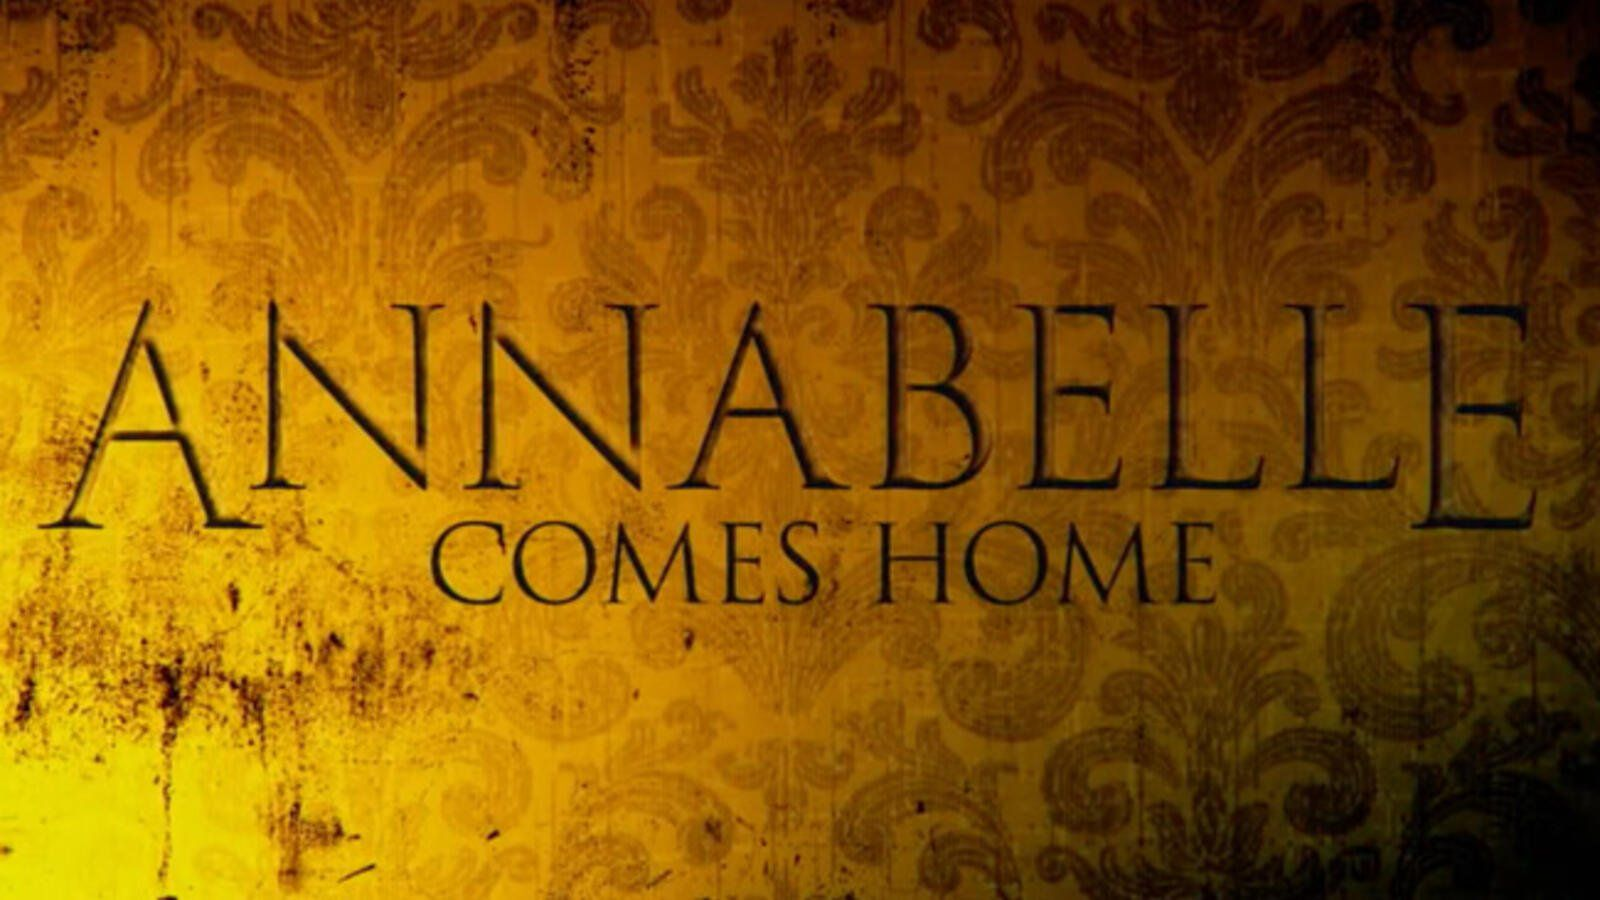 annabelle comes home torrent magnet